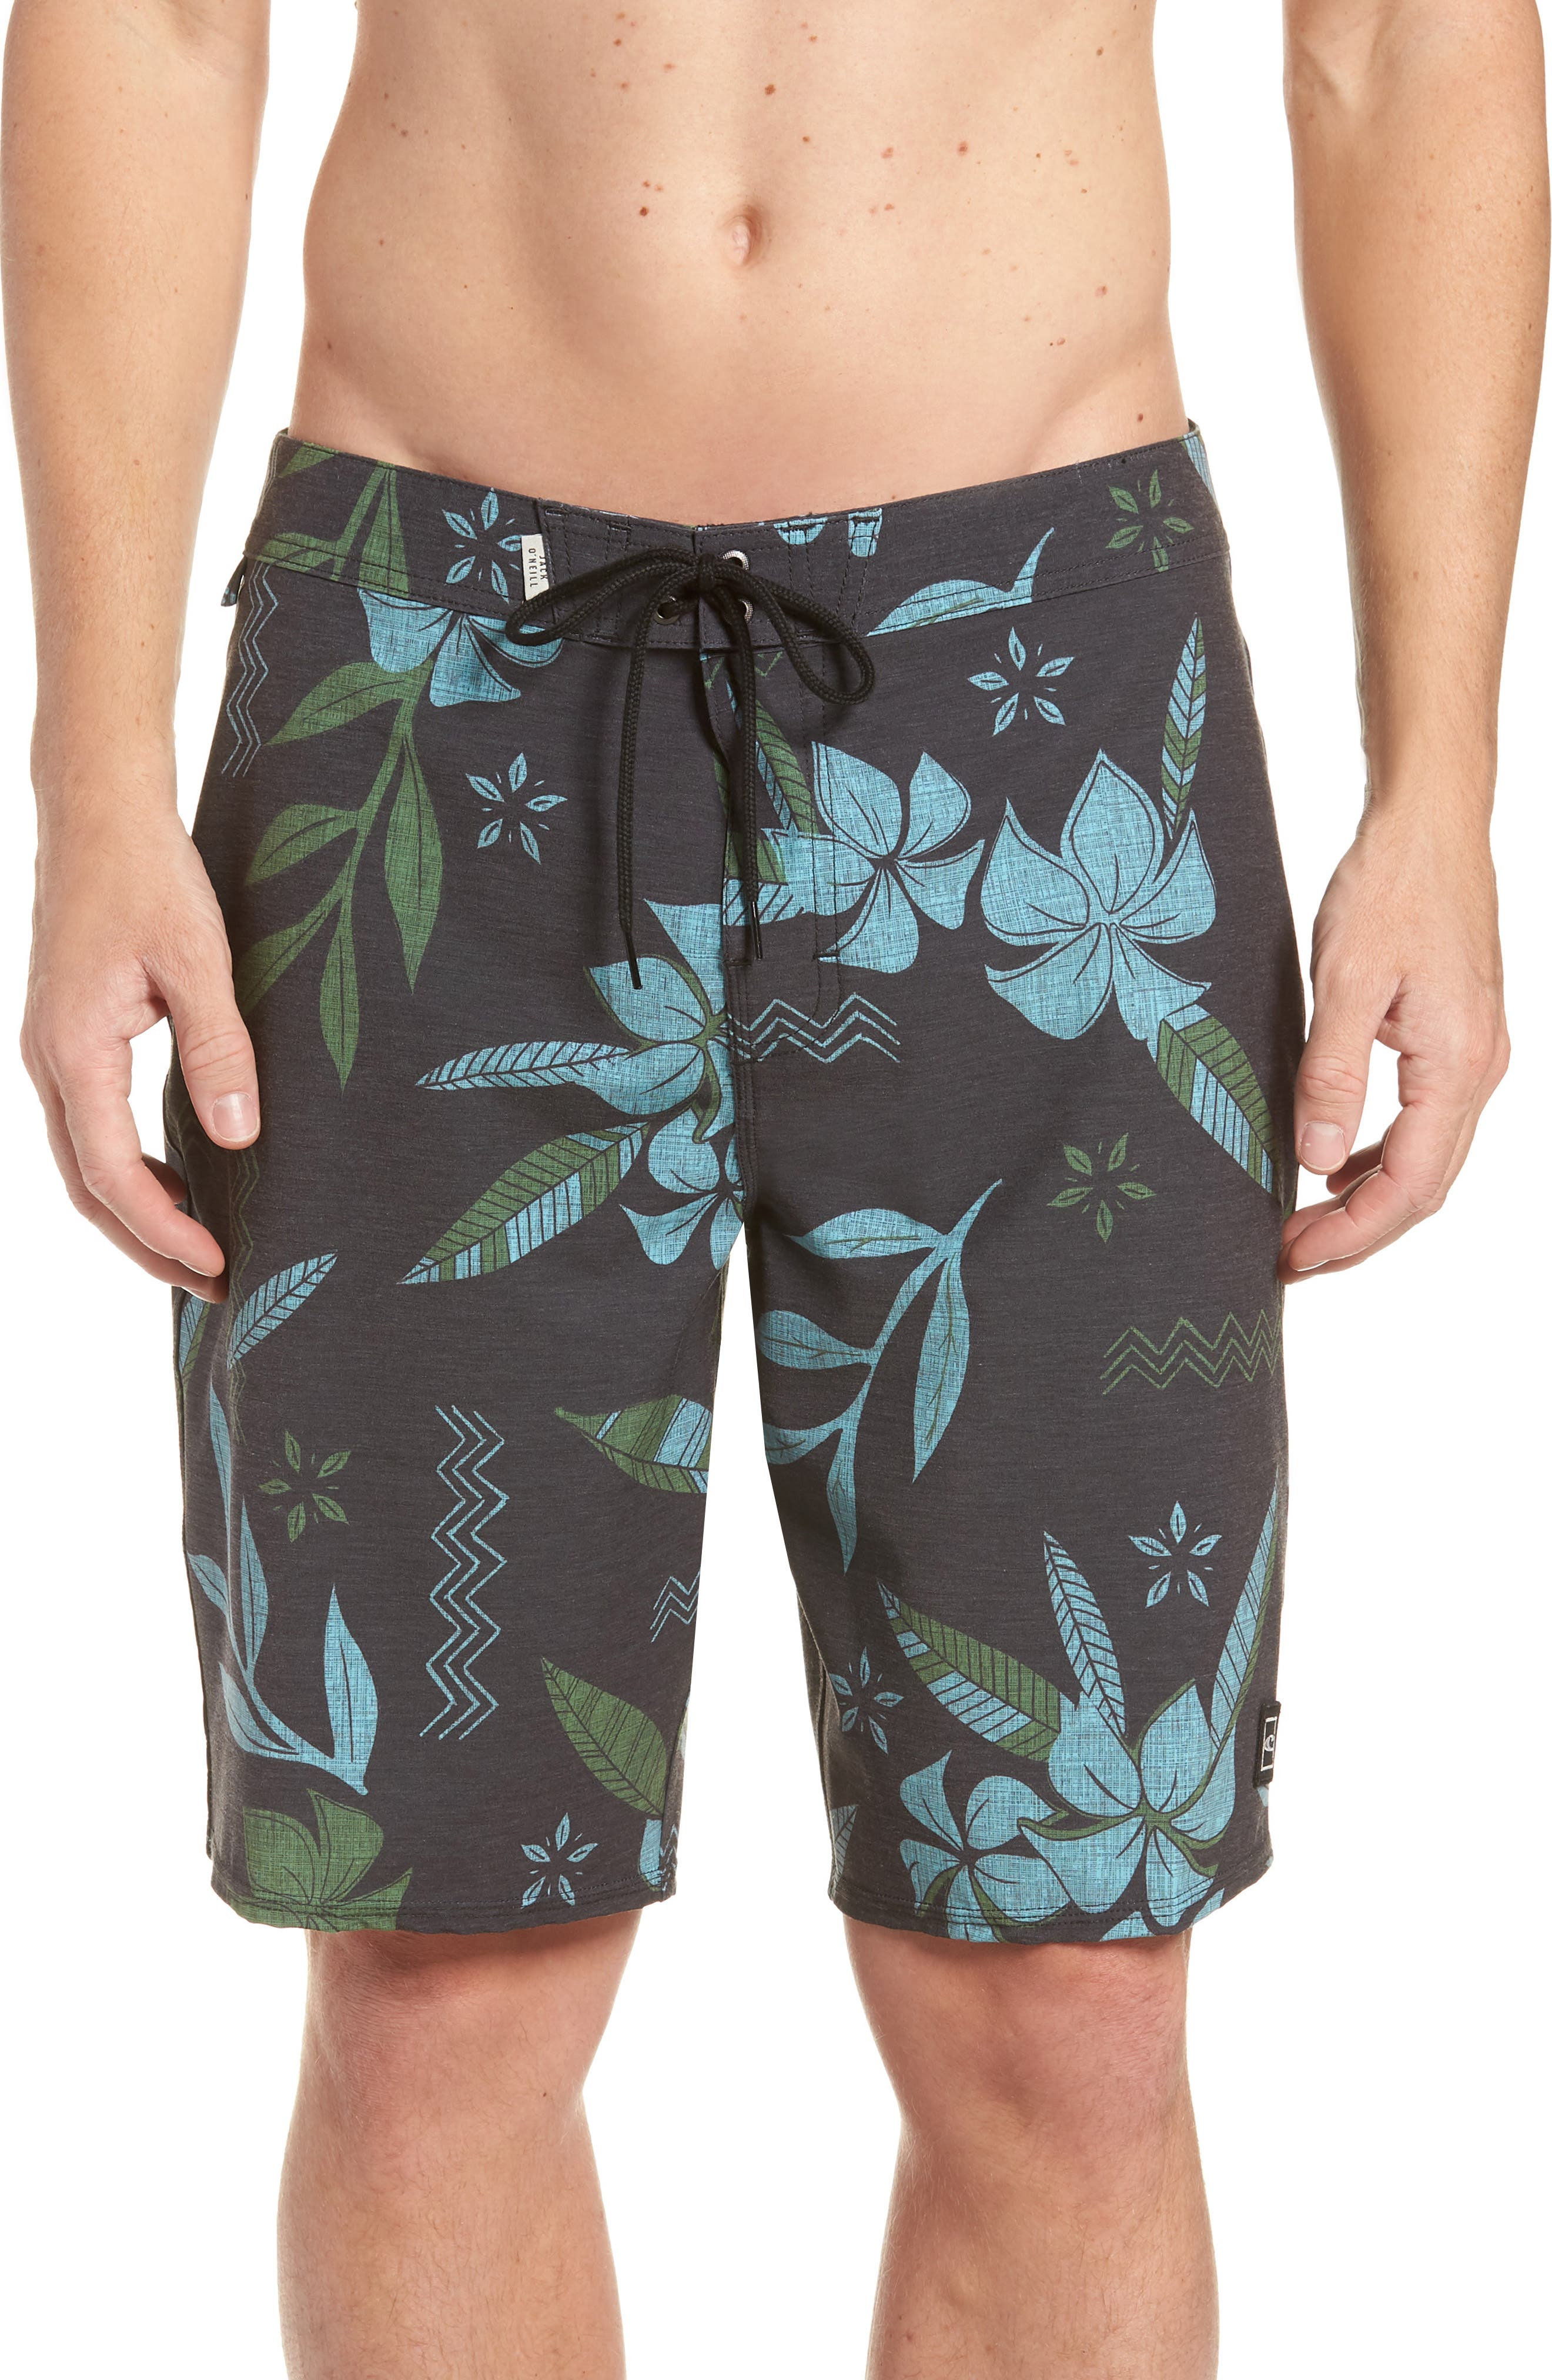 Maui Board Shorts,                         Main,                         color,